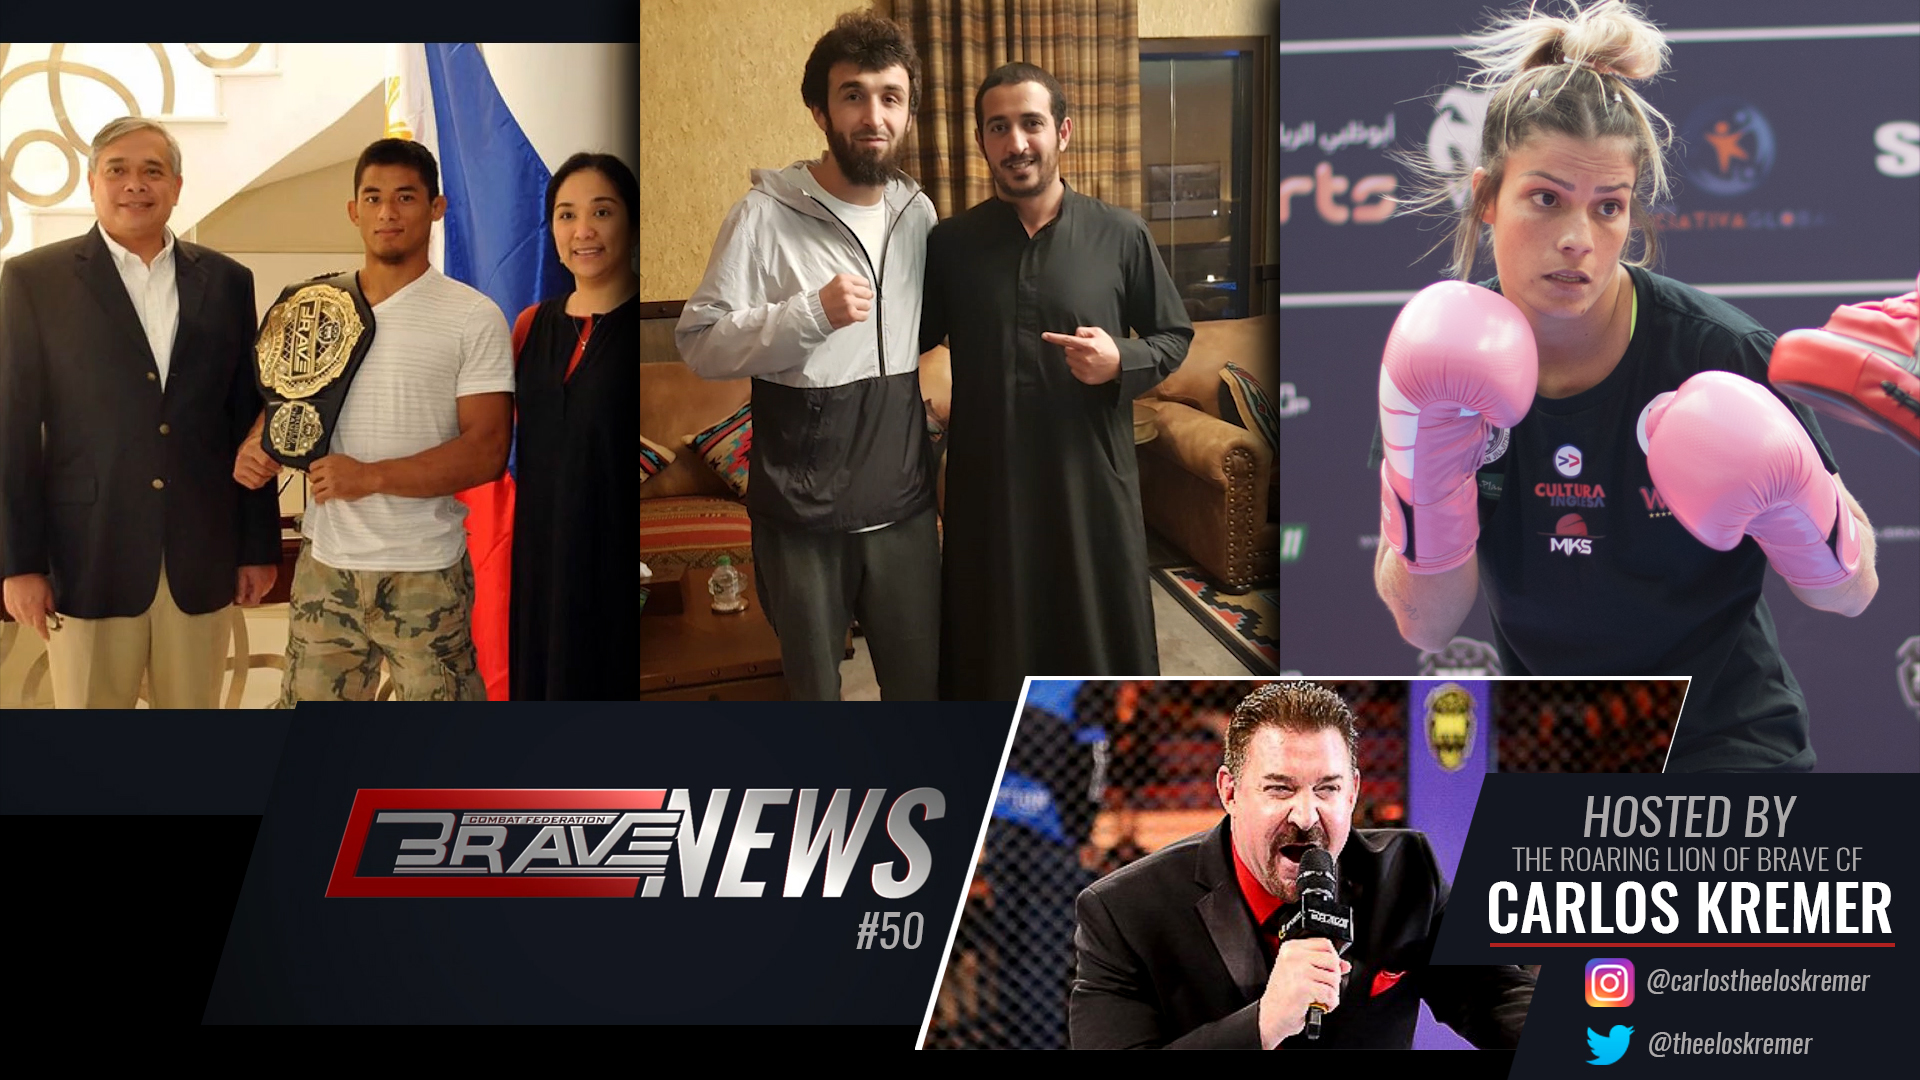 50th edition of Brave News released -